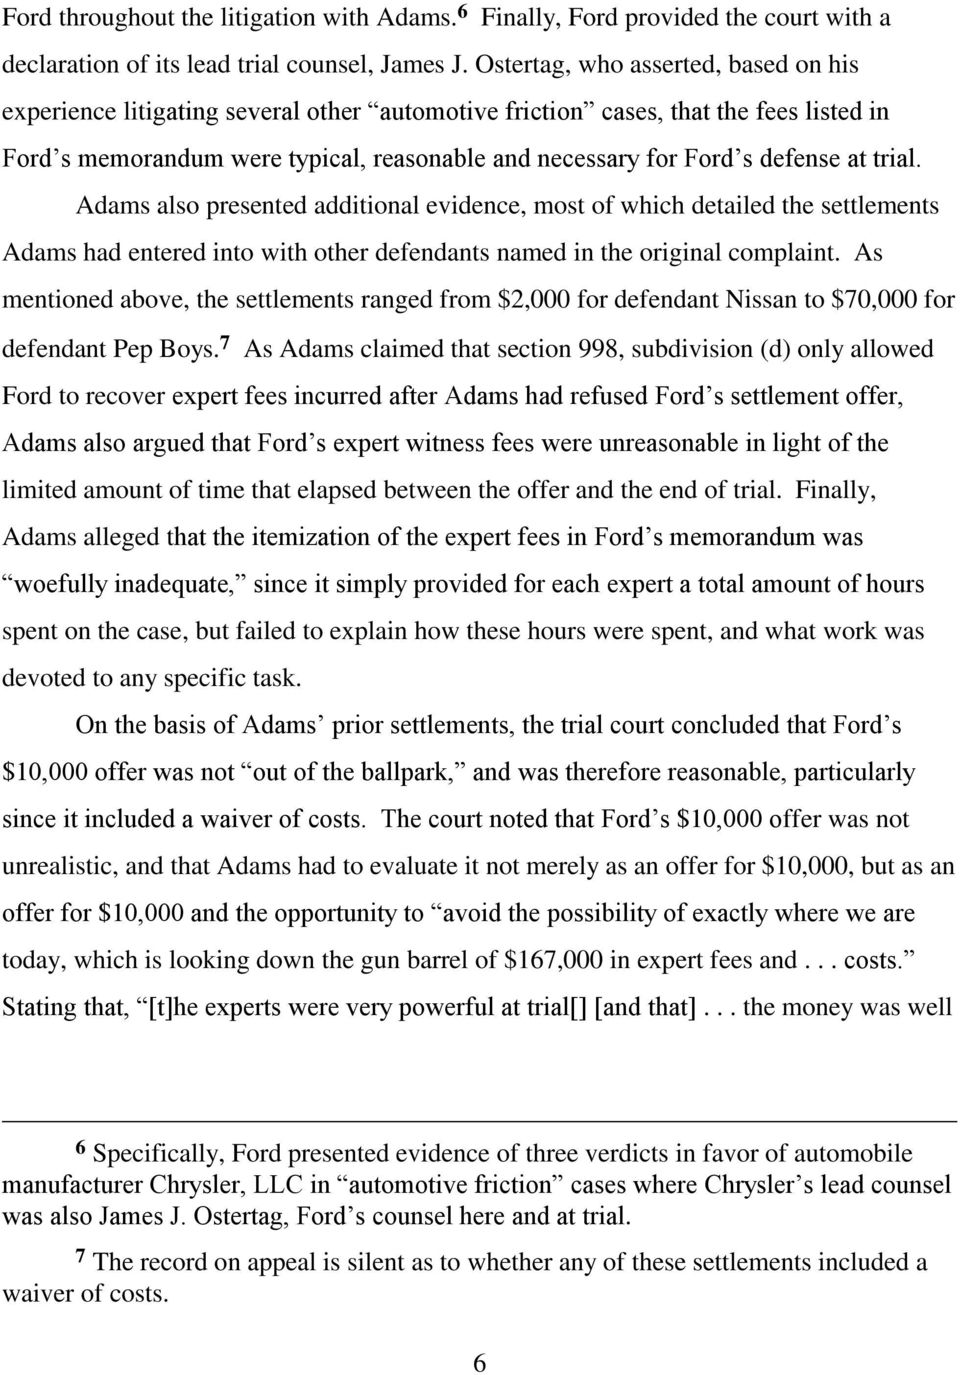 at trial. Adams also presented additional evidence, most of which detailed the settlements Adams had entered into with other defendants named in the original complaint.